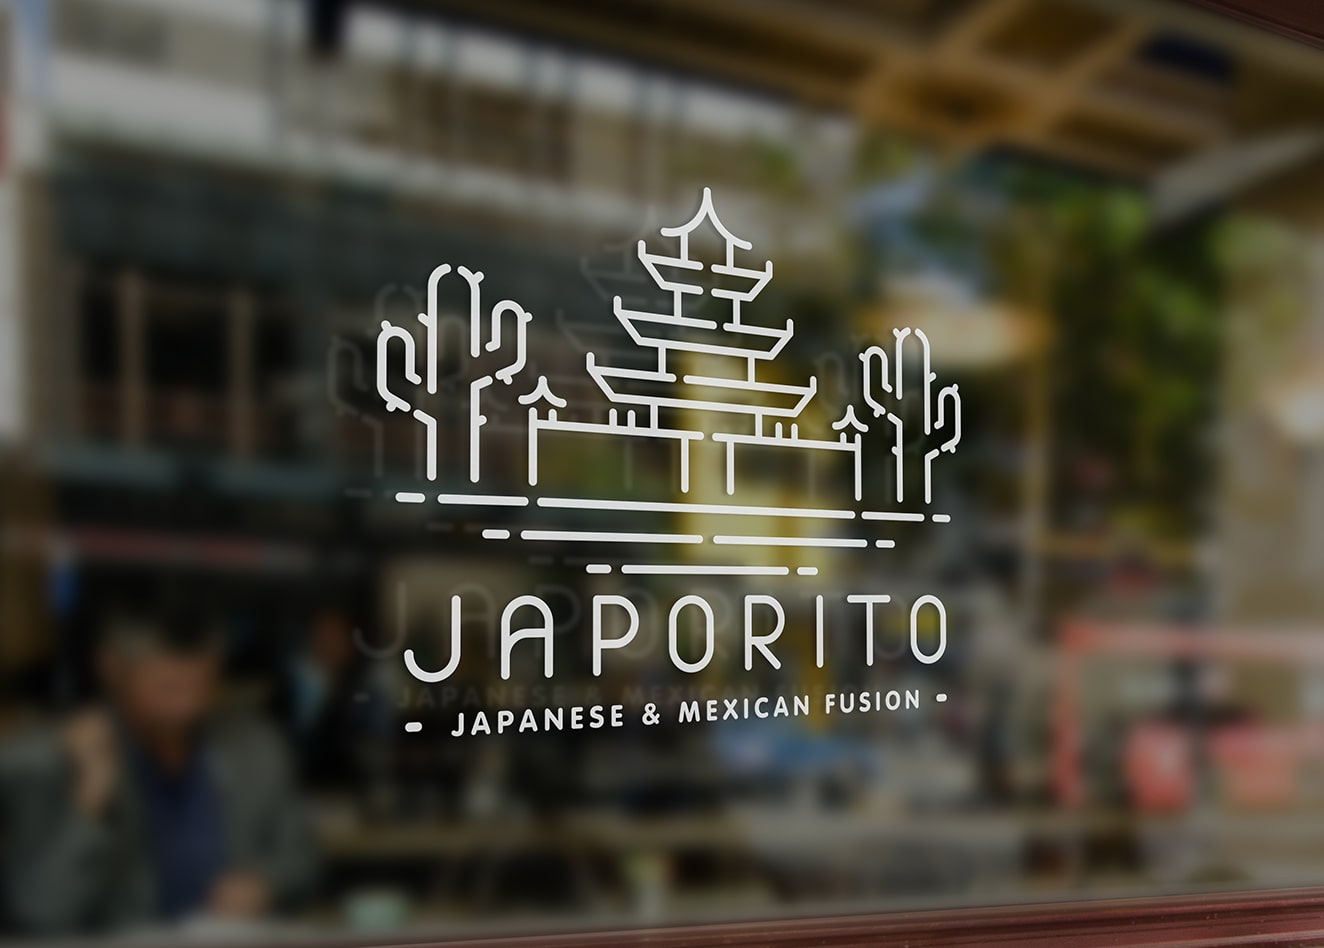 Food communication and identity for Japorito restaurant - Luther